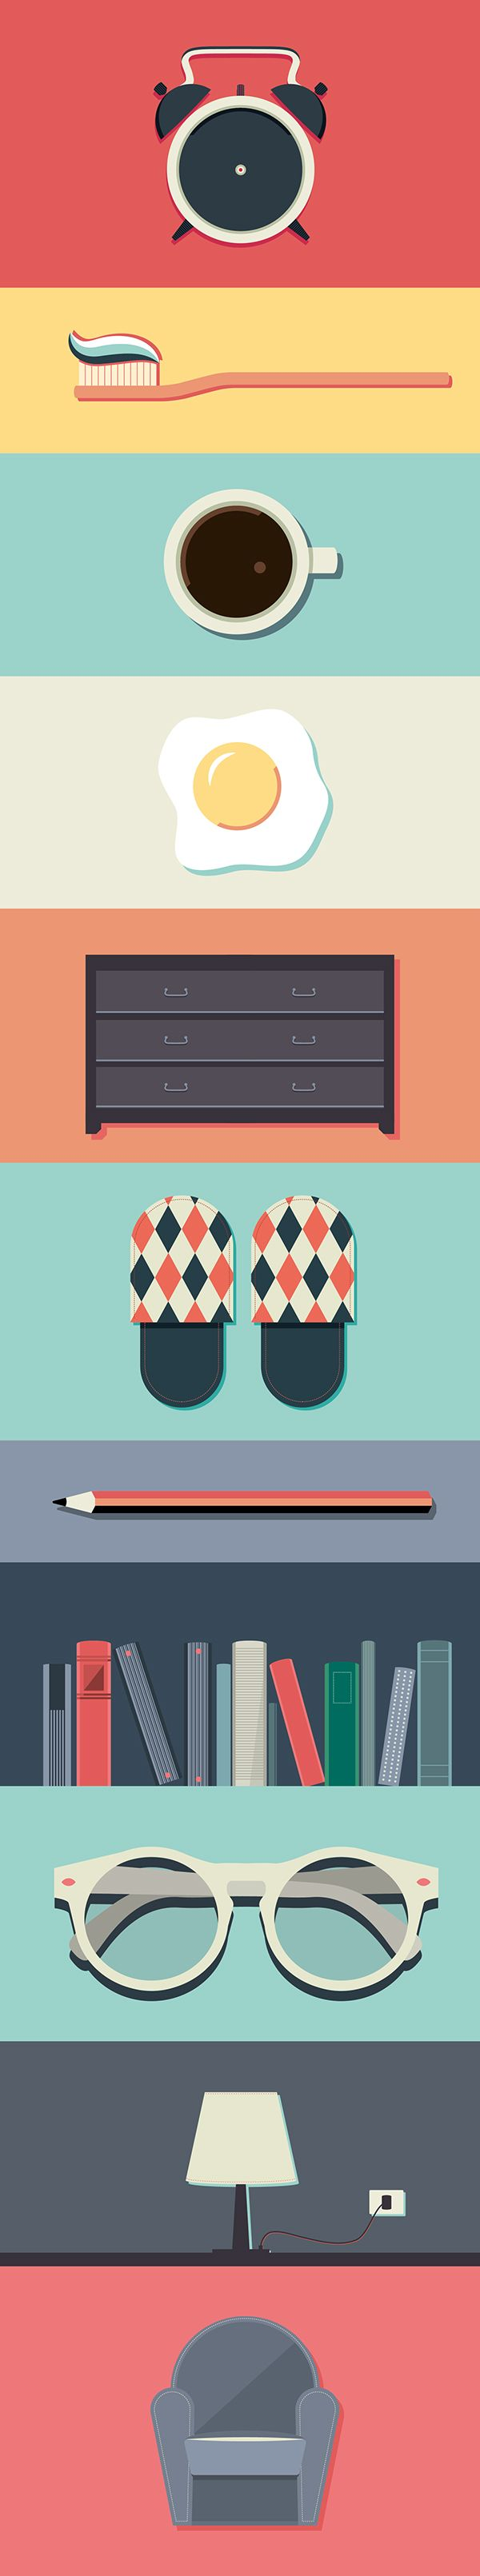 Set of flat icons inspired by daily life.